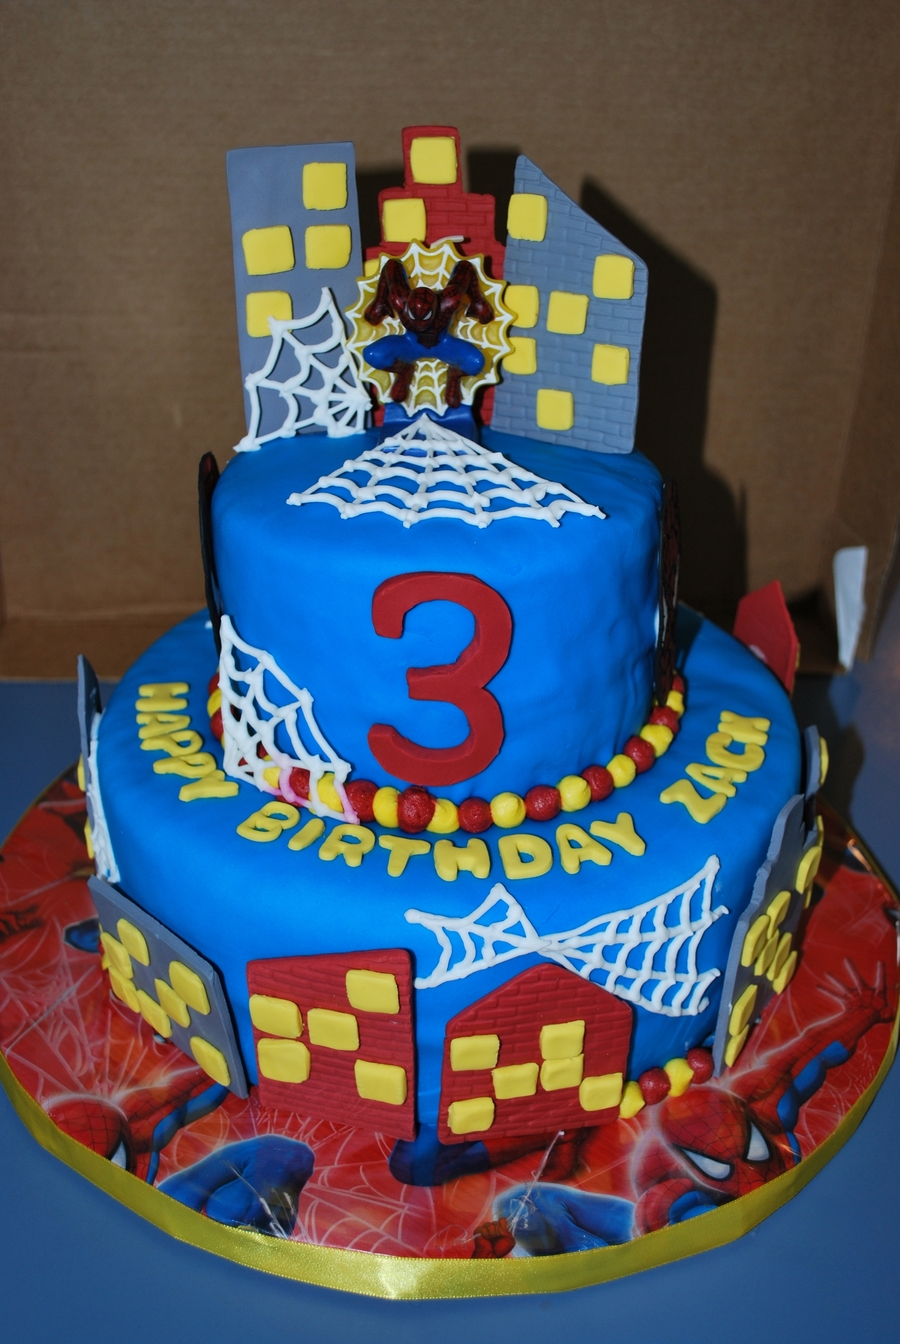 Birthday Cake Designs Spiderman : Spiderman 3Rd Birthday Cake - CakeCentral.com